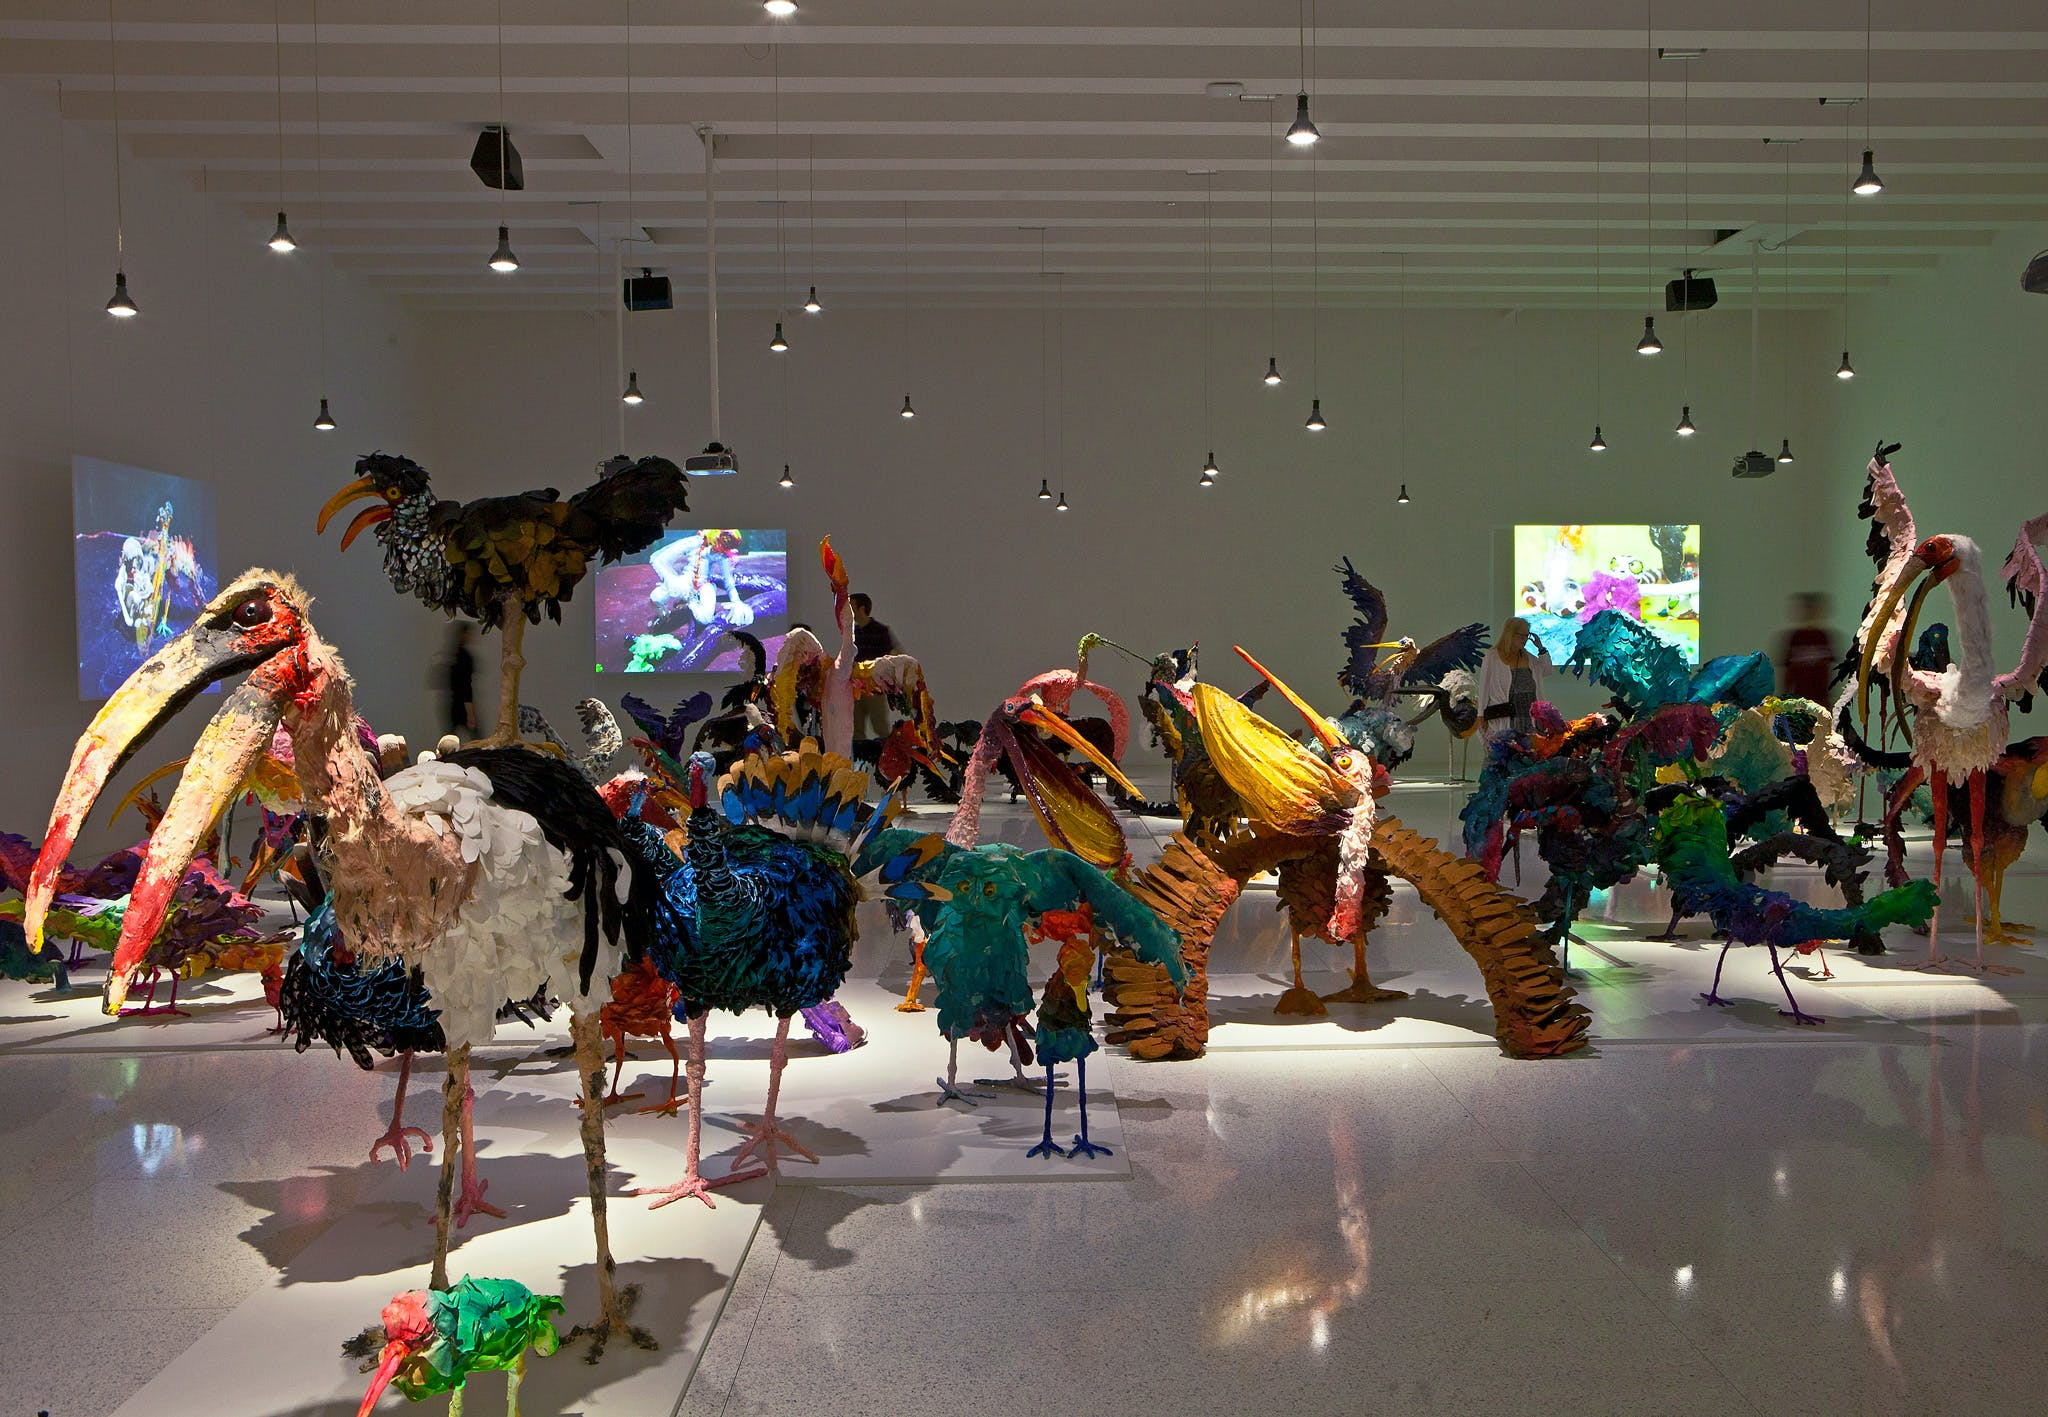 Installation view of The Parade: Nathalie Djurberg with Music by Hans Berg at the Walker Art Center